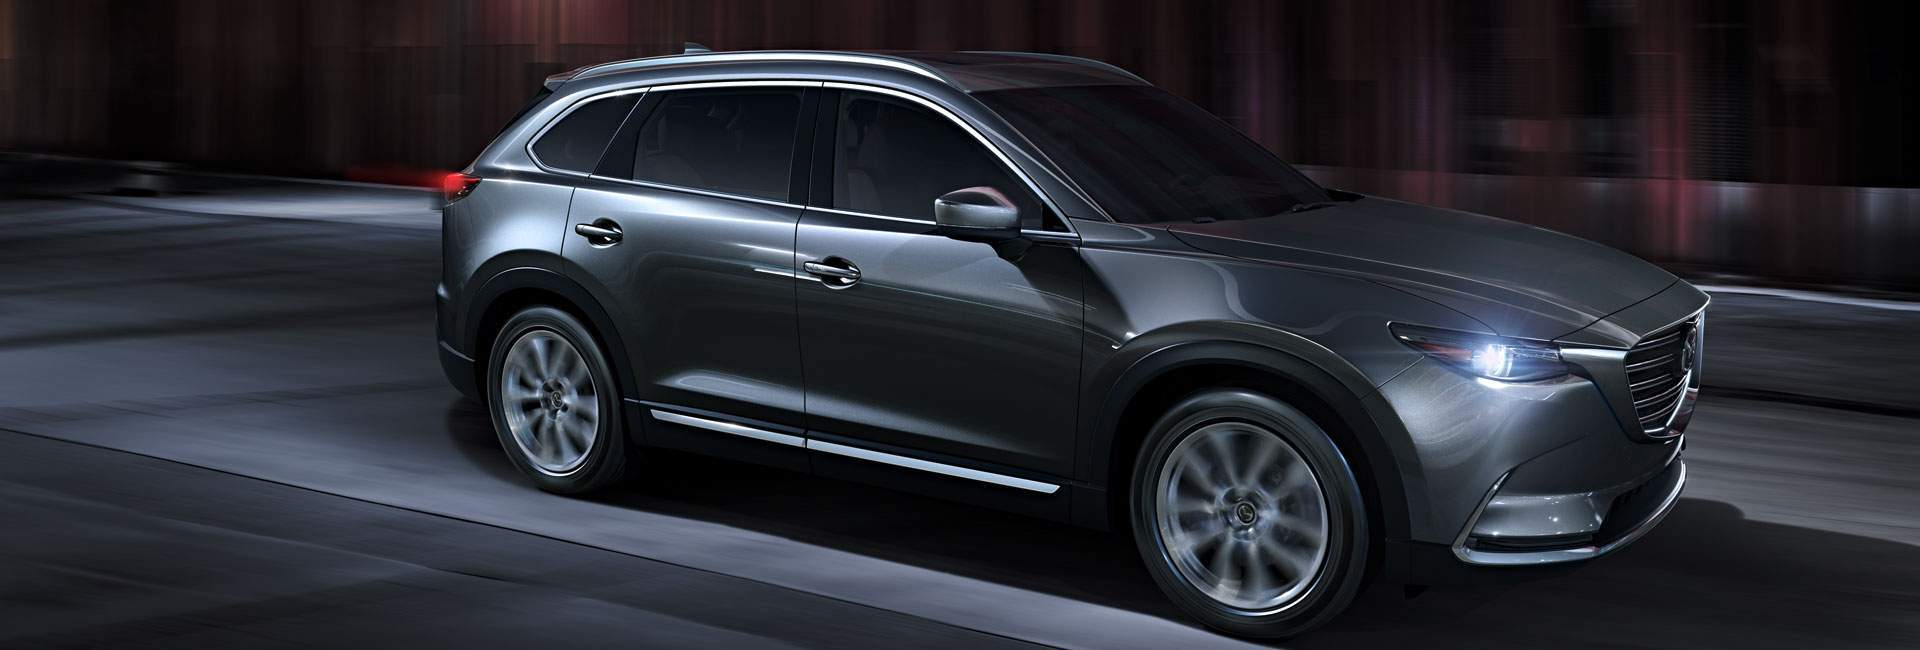 Save on new 2017 CX-9s